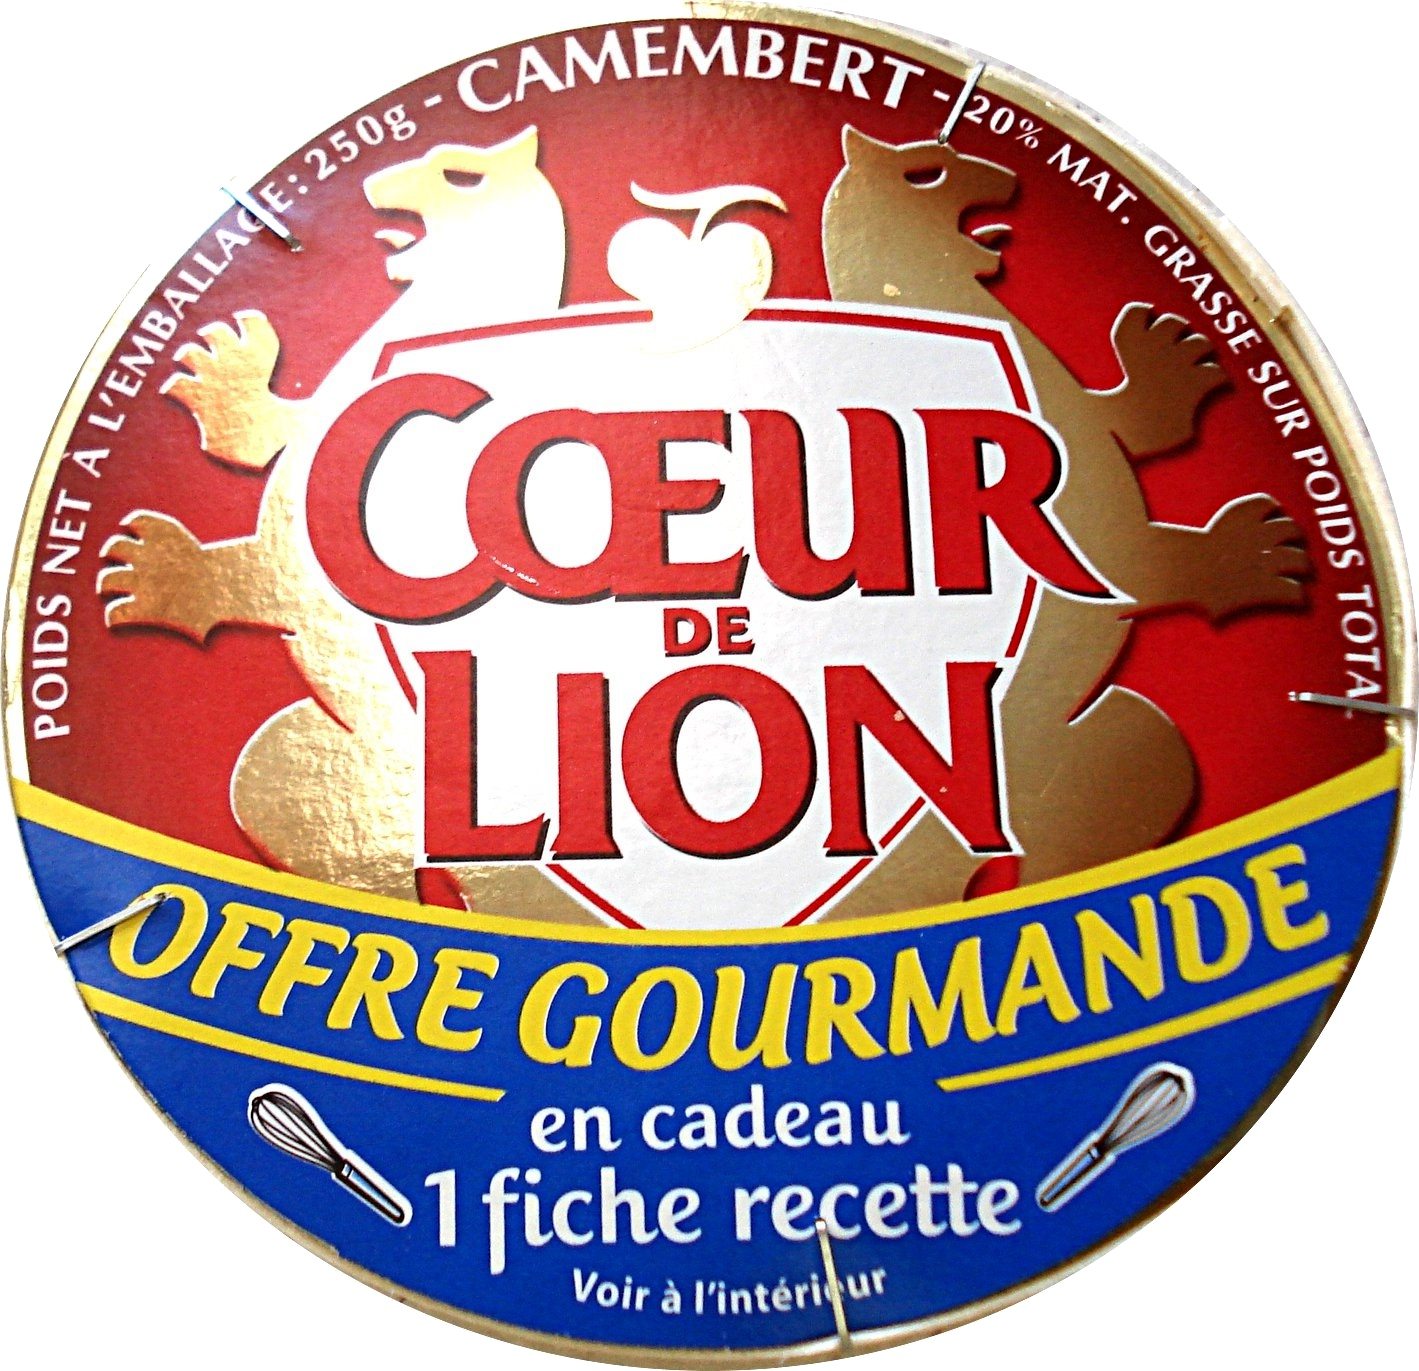 Camembert (20 % MG), Offre Gourmande - Product - fr